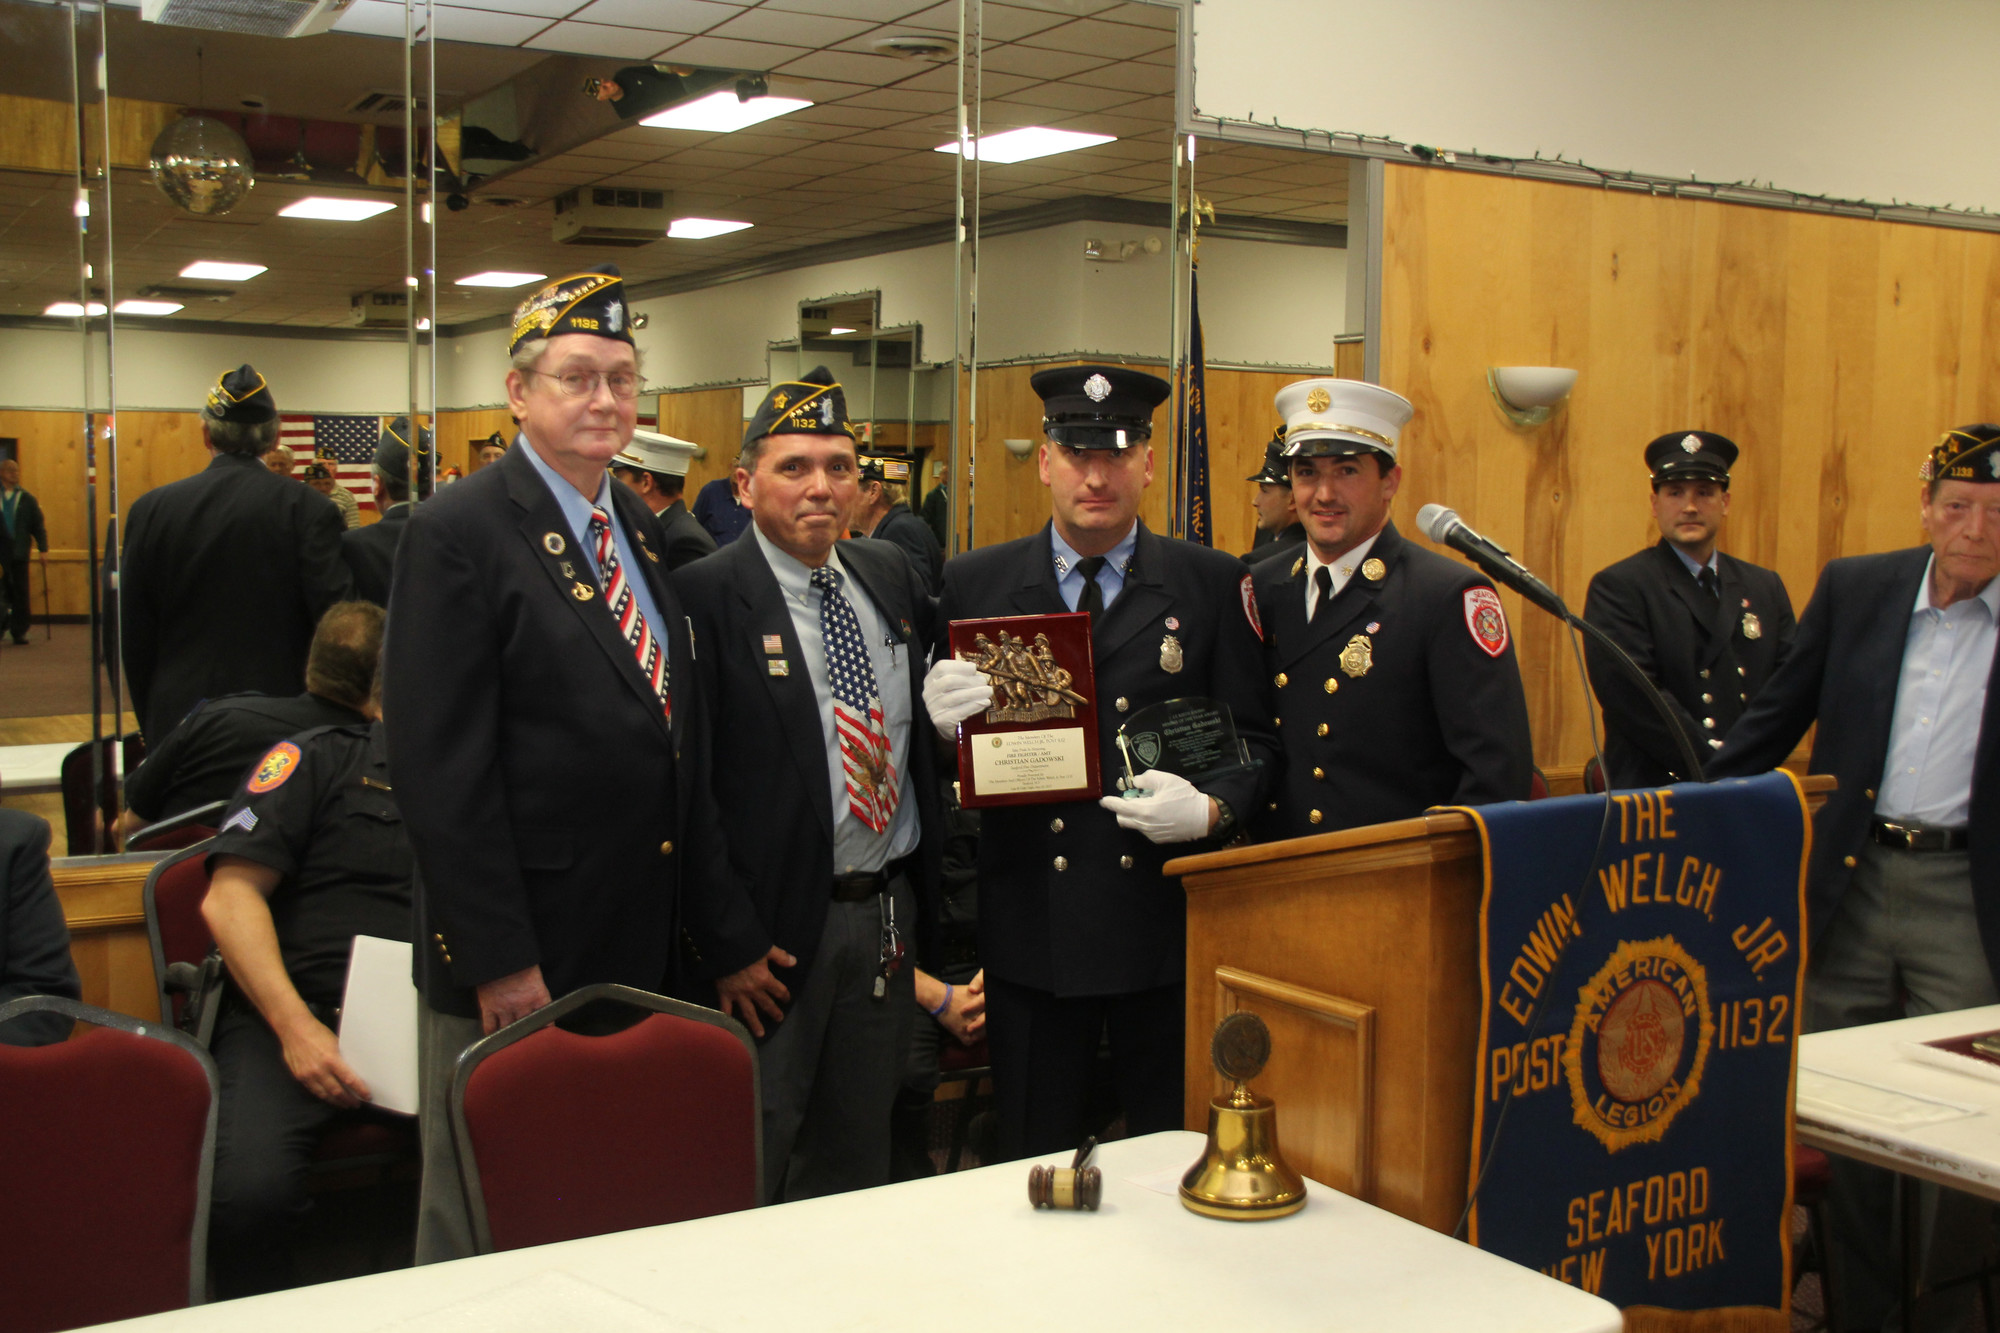 Christian Gadowski, second from right, received the Lt. Keith P. Kern Member of the Year Award.